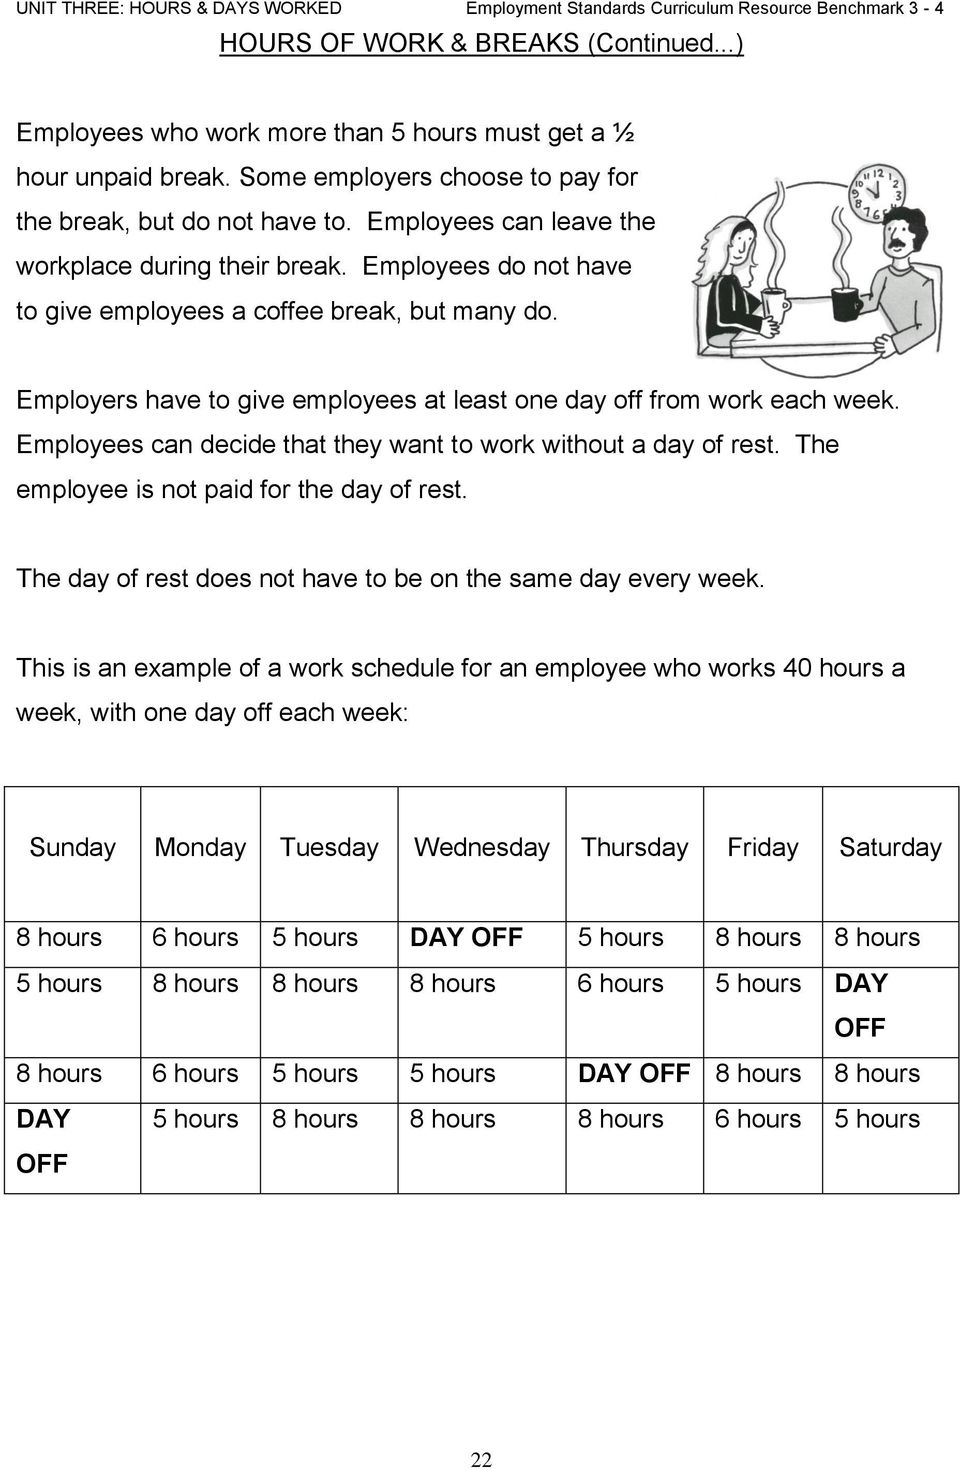 Employees can decide that they want to work without a day of rest. The employee is not paid for the day of rest. The day of rest does not have to be on the same day every week.